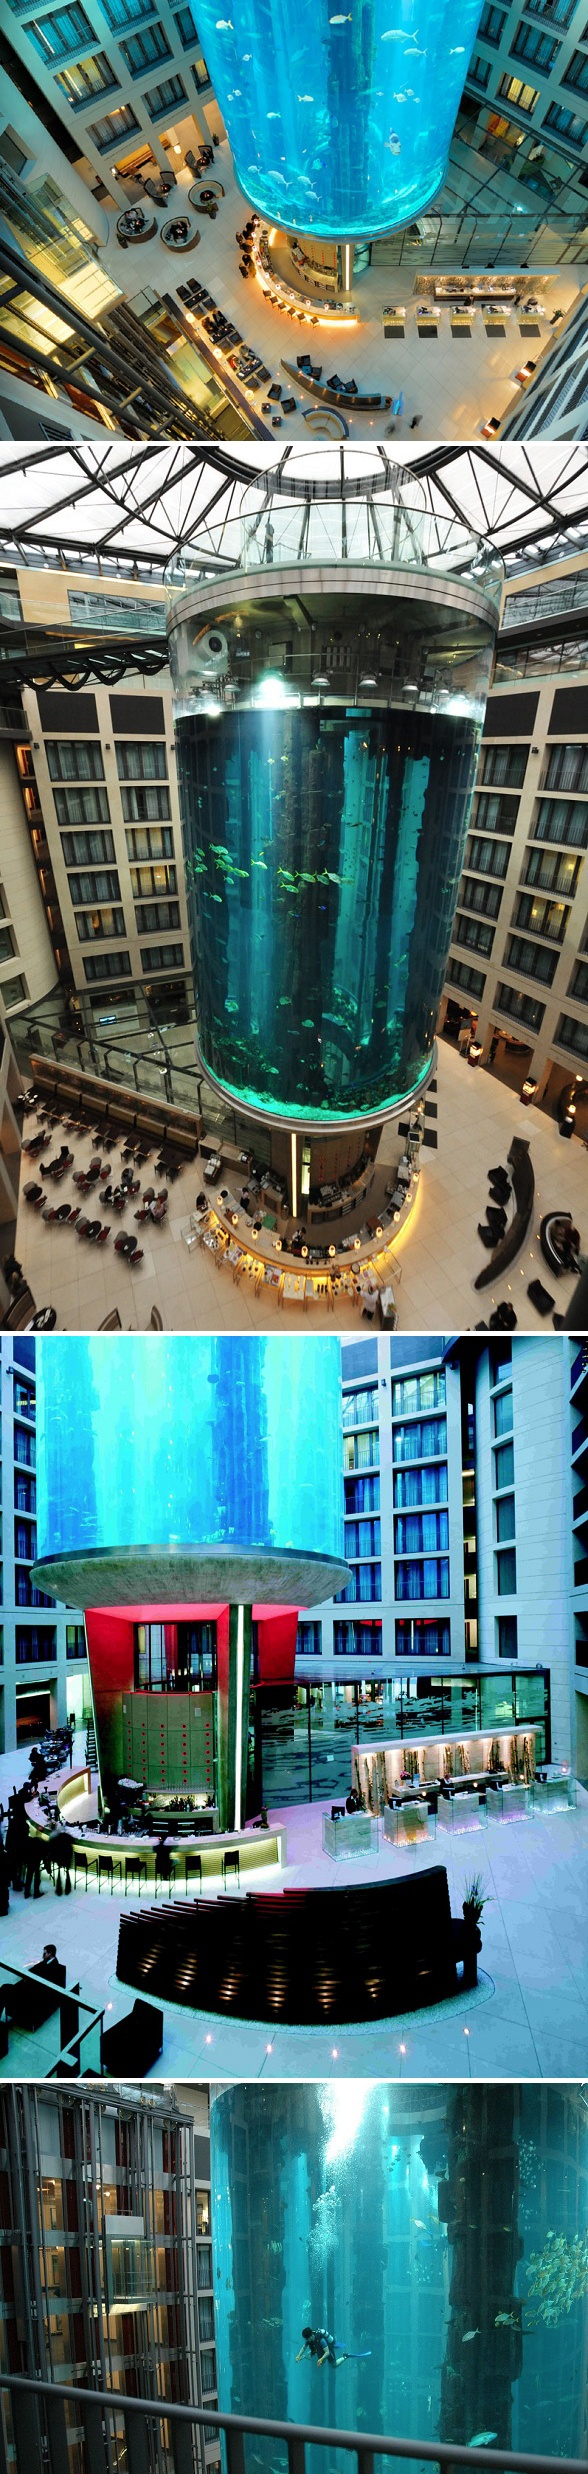 15 must see aquarium architecture pins radisson hotel berlin hotel and hotels berlin germany. Black Bedroom Furniture Sets. Home Design Ideas